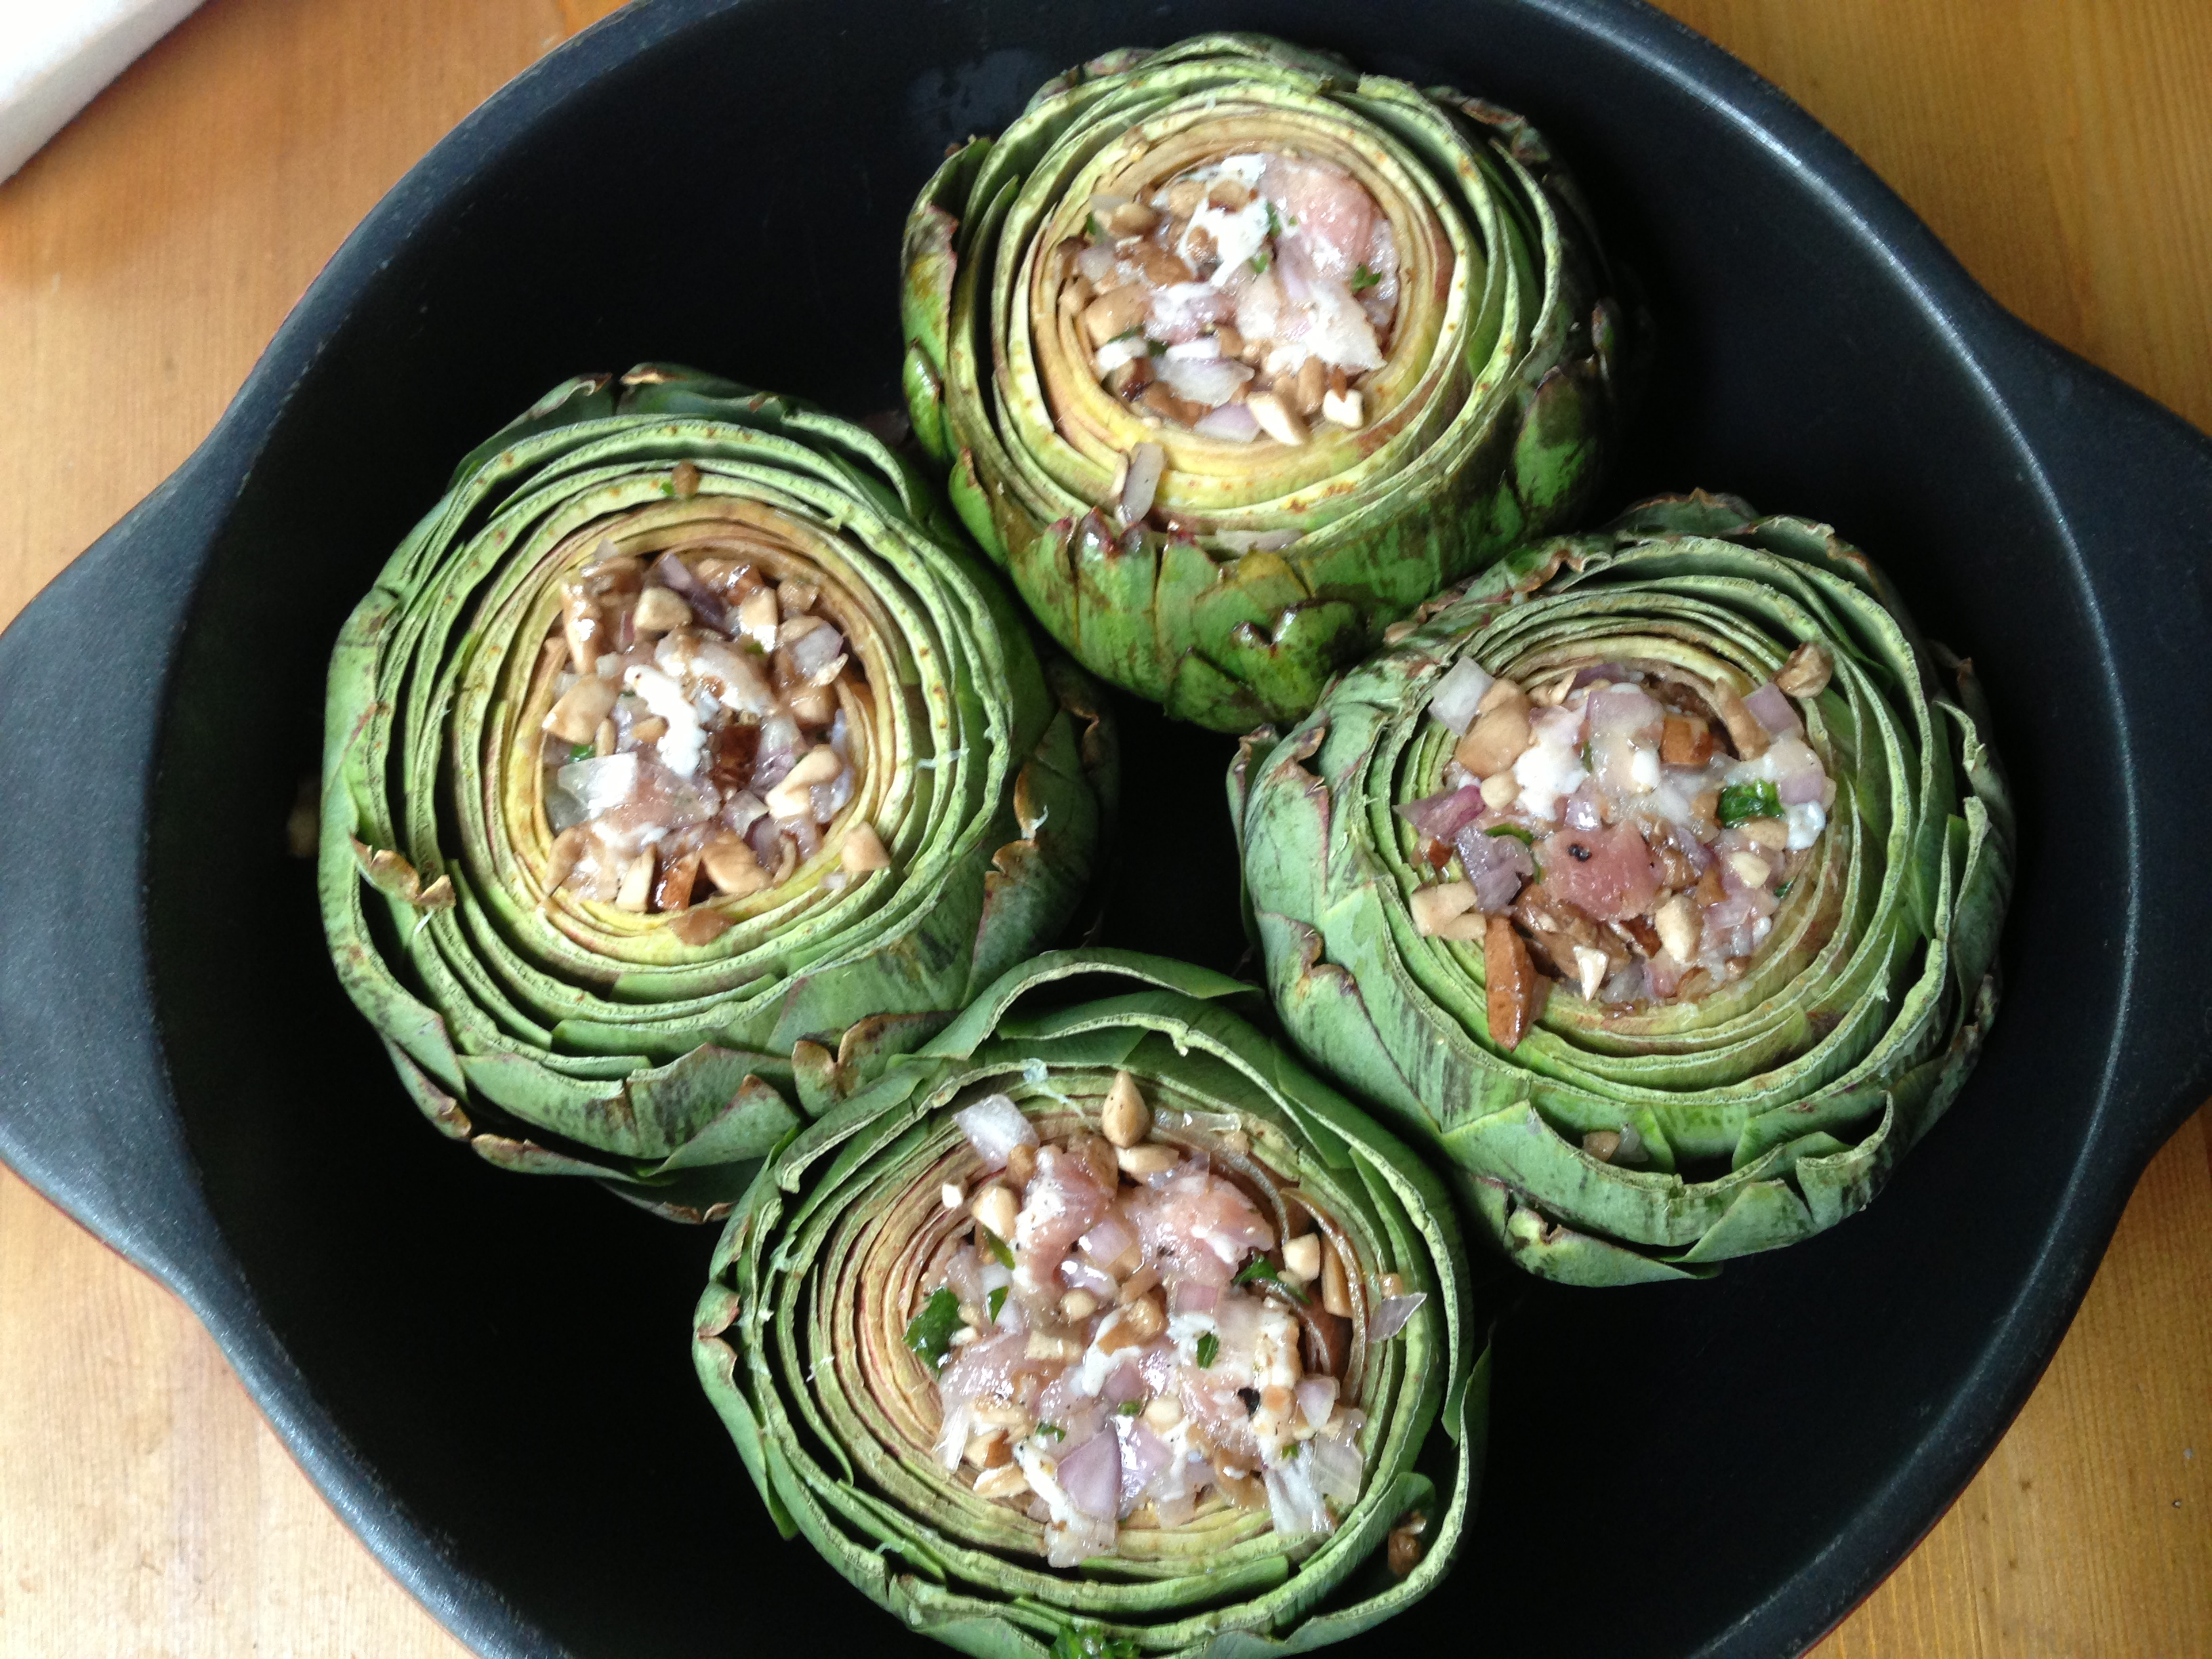 Filled artichokes